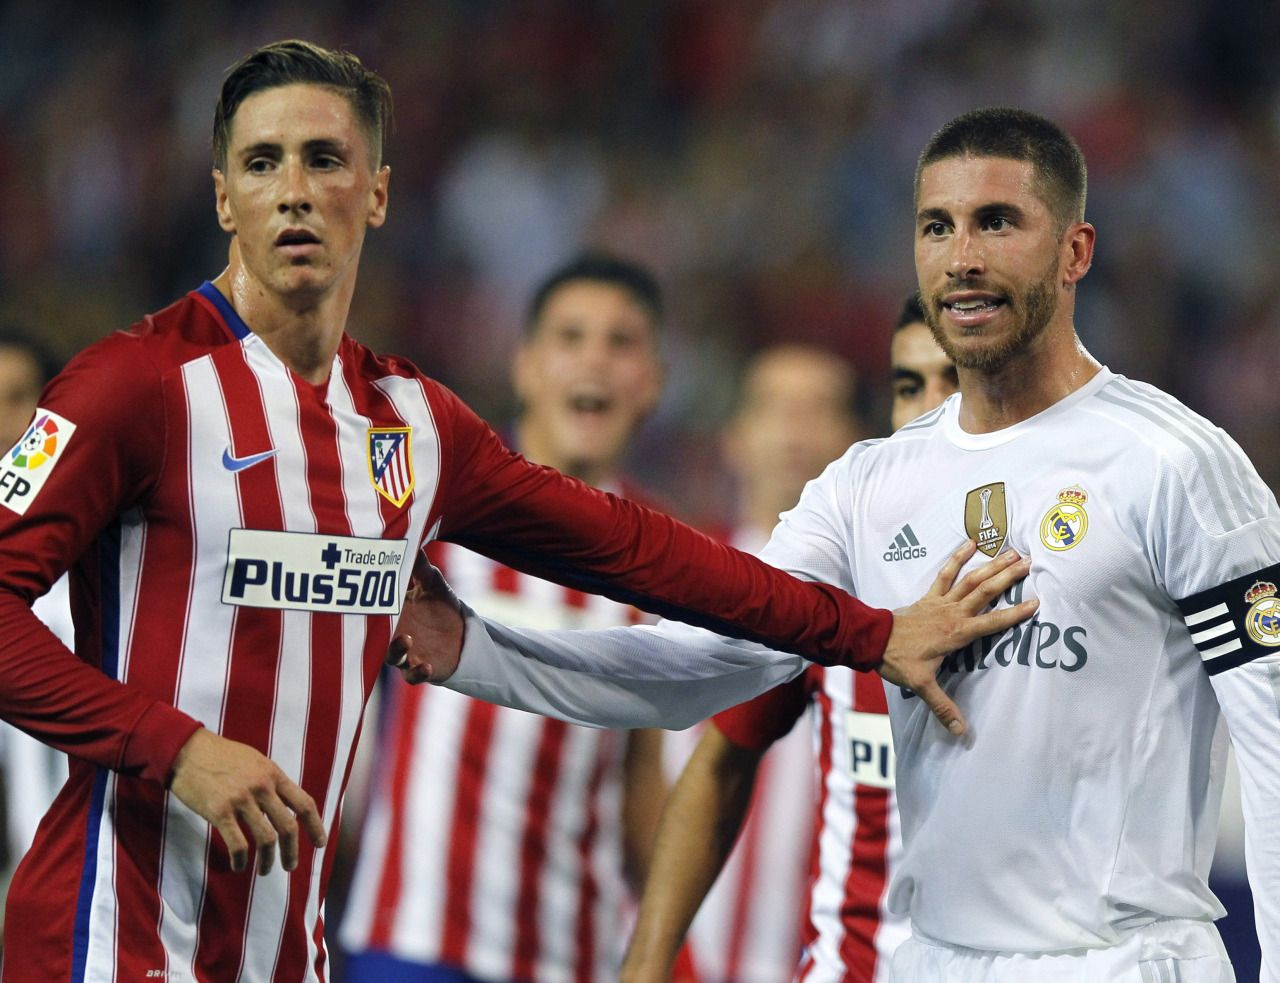 """Ramos: """"Knock it off Torres, quit touching my uniform!"""" Torres: """"Oh, like this?  *Puts hand on Sergio* What are you going to do about it?"""" Ramos: """"This! *Puts hand on Torres*"""" Both:  """"Ref, he won't stop hitting me!"""""""